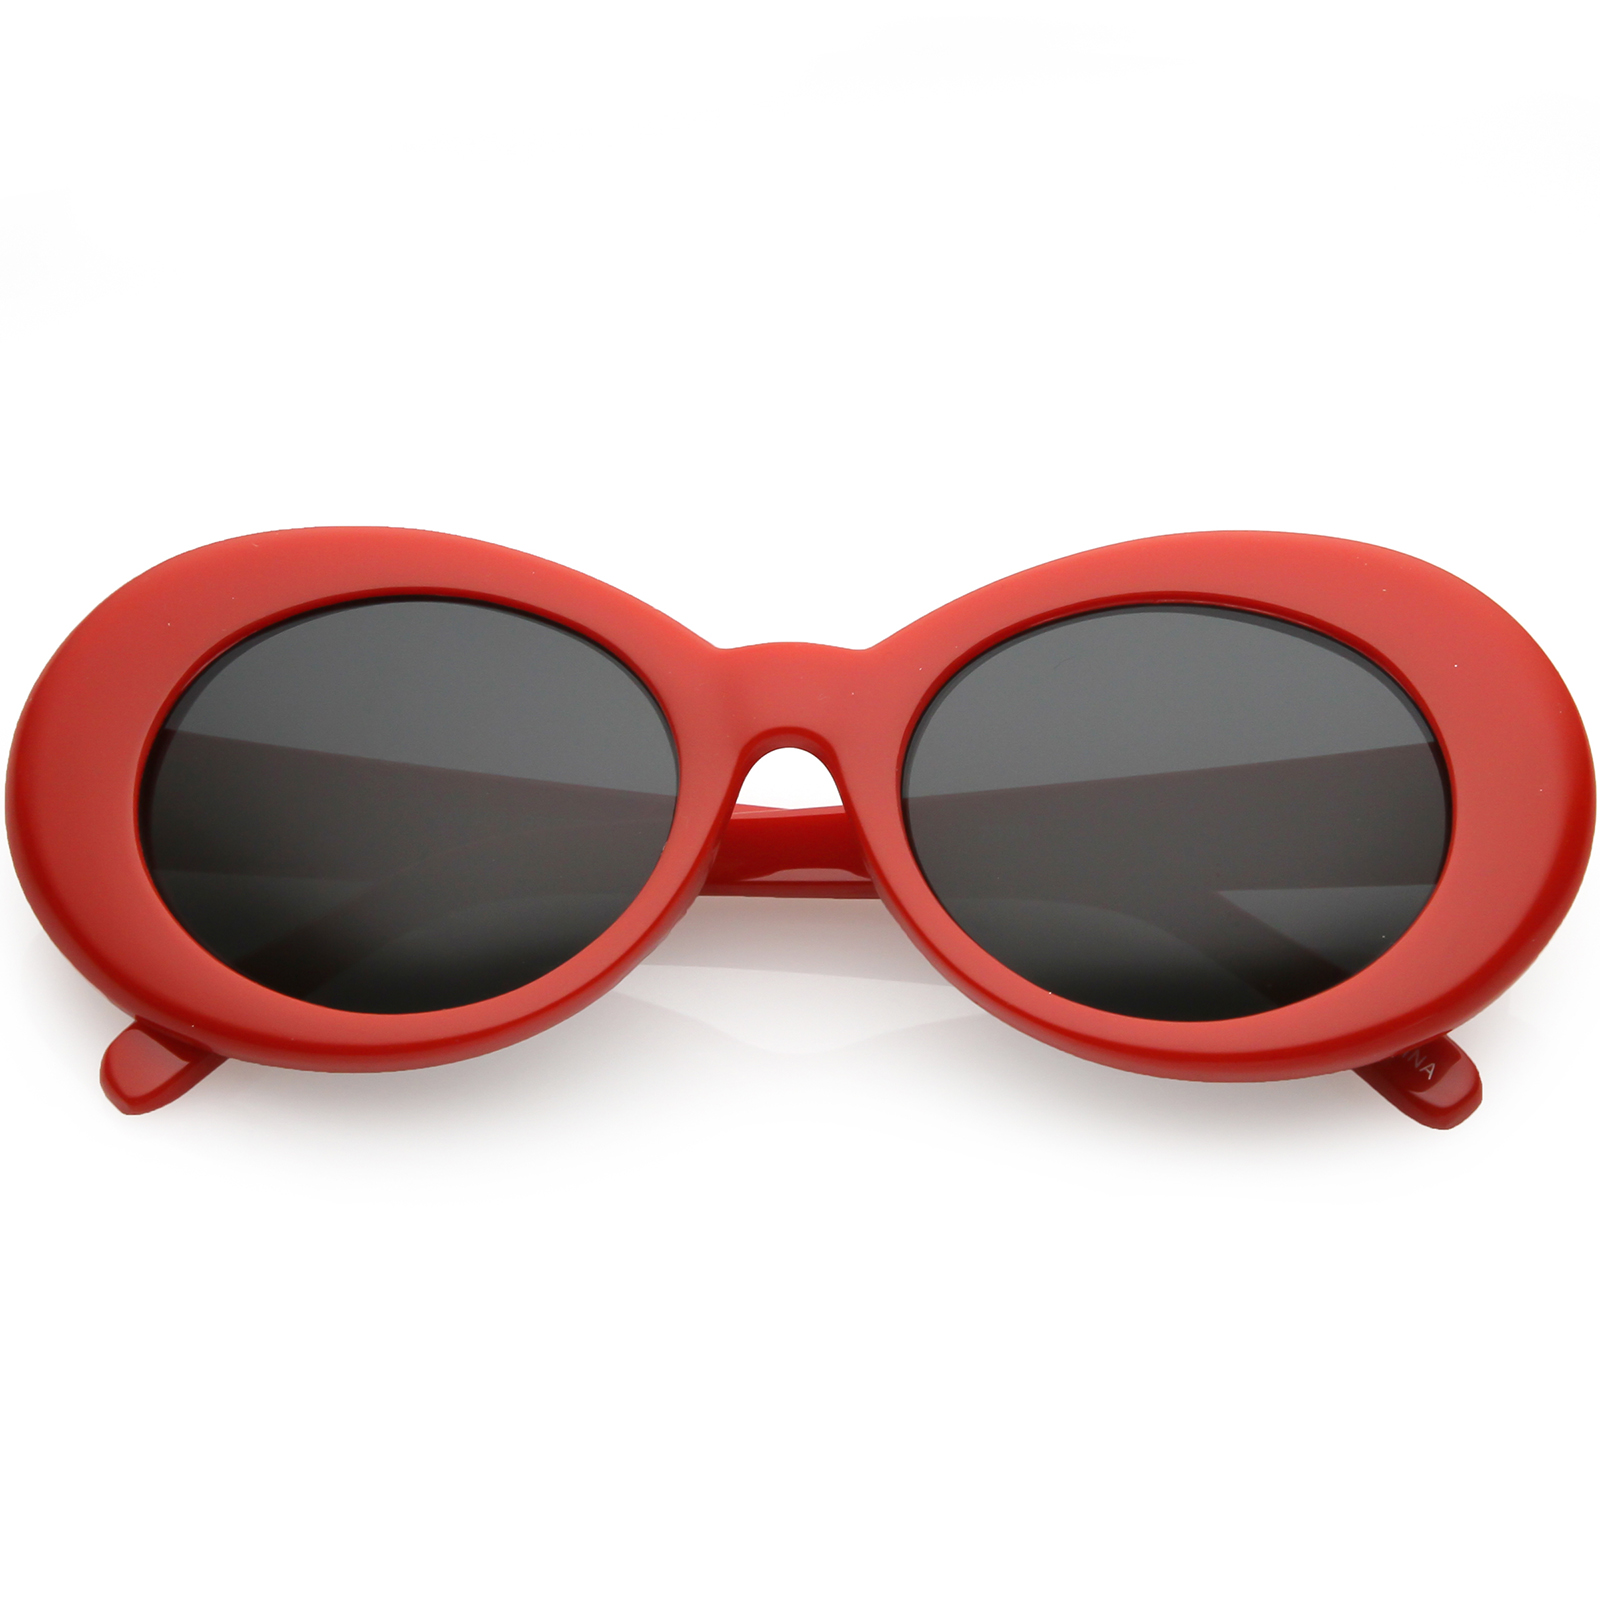 sunglassLA - Large Retro Mod Oval Sunglasses Thick Frame Wide Arms Neutral Colored Lens 53mm - 53mm